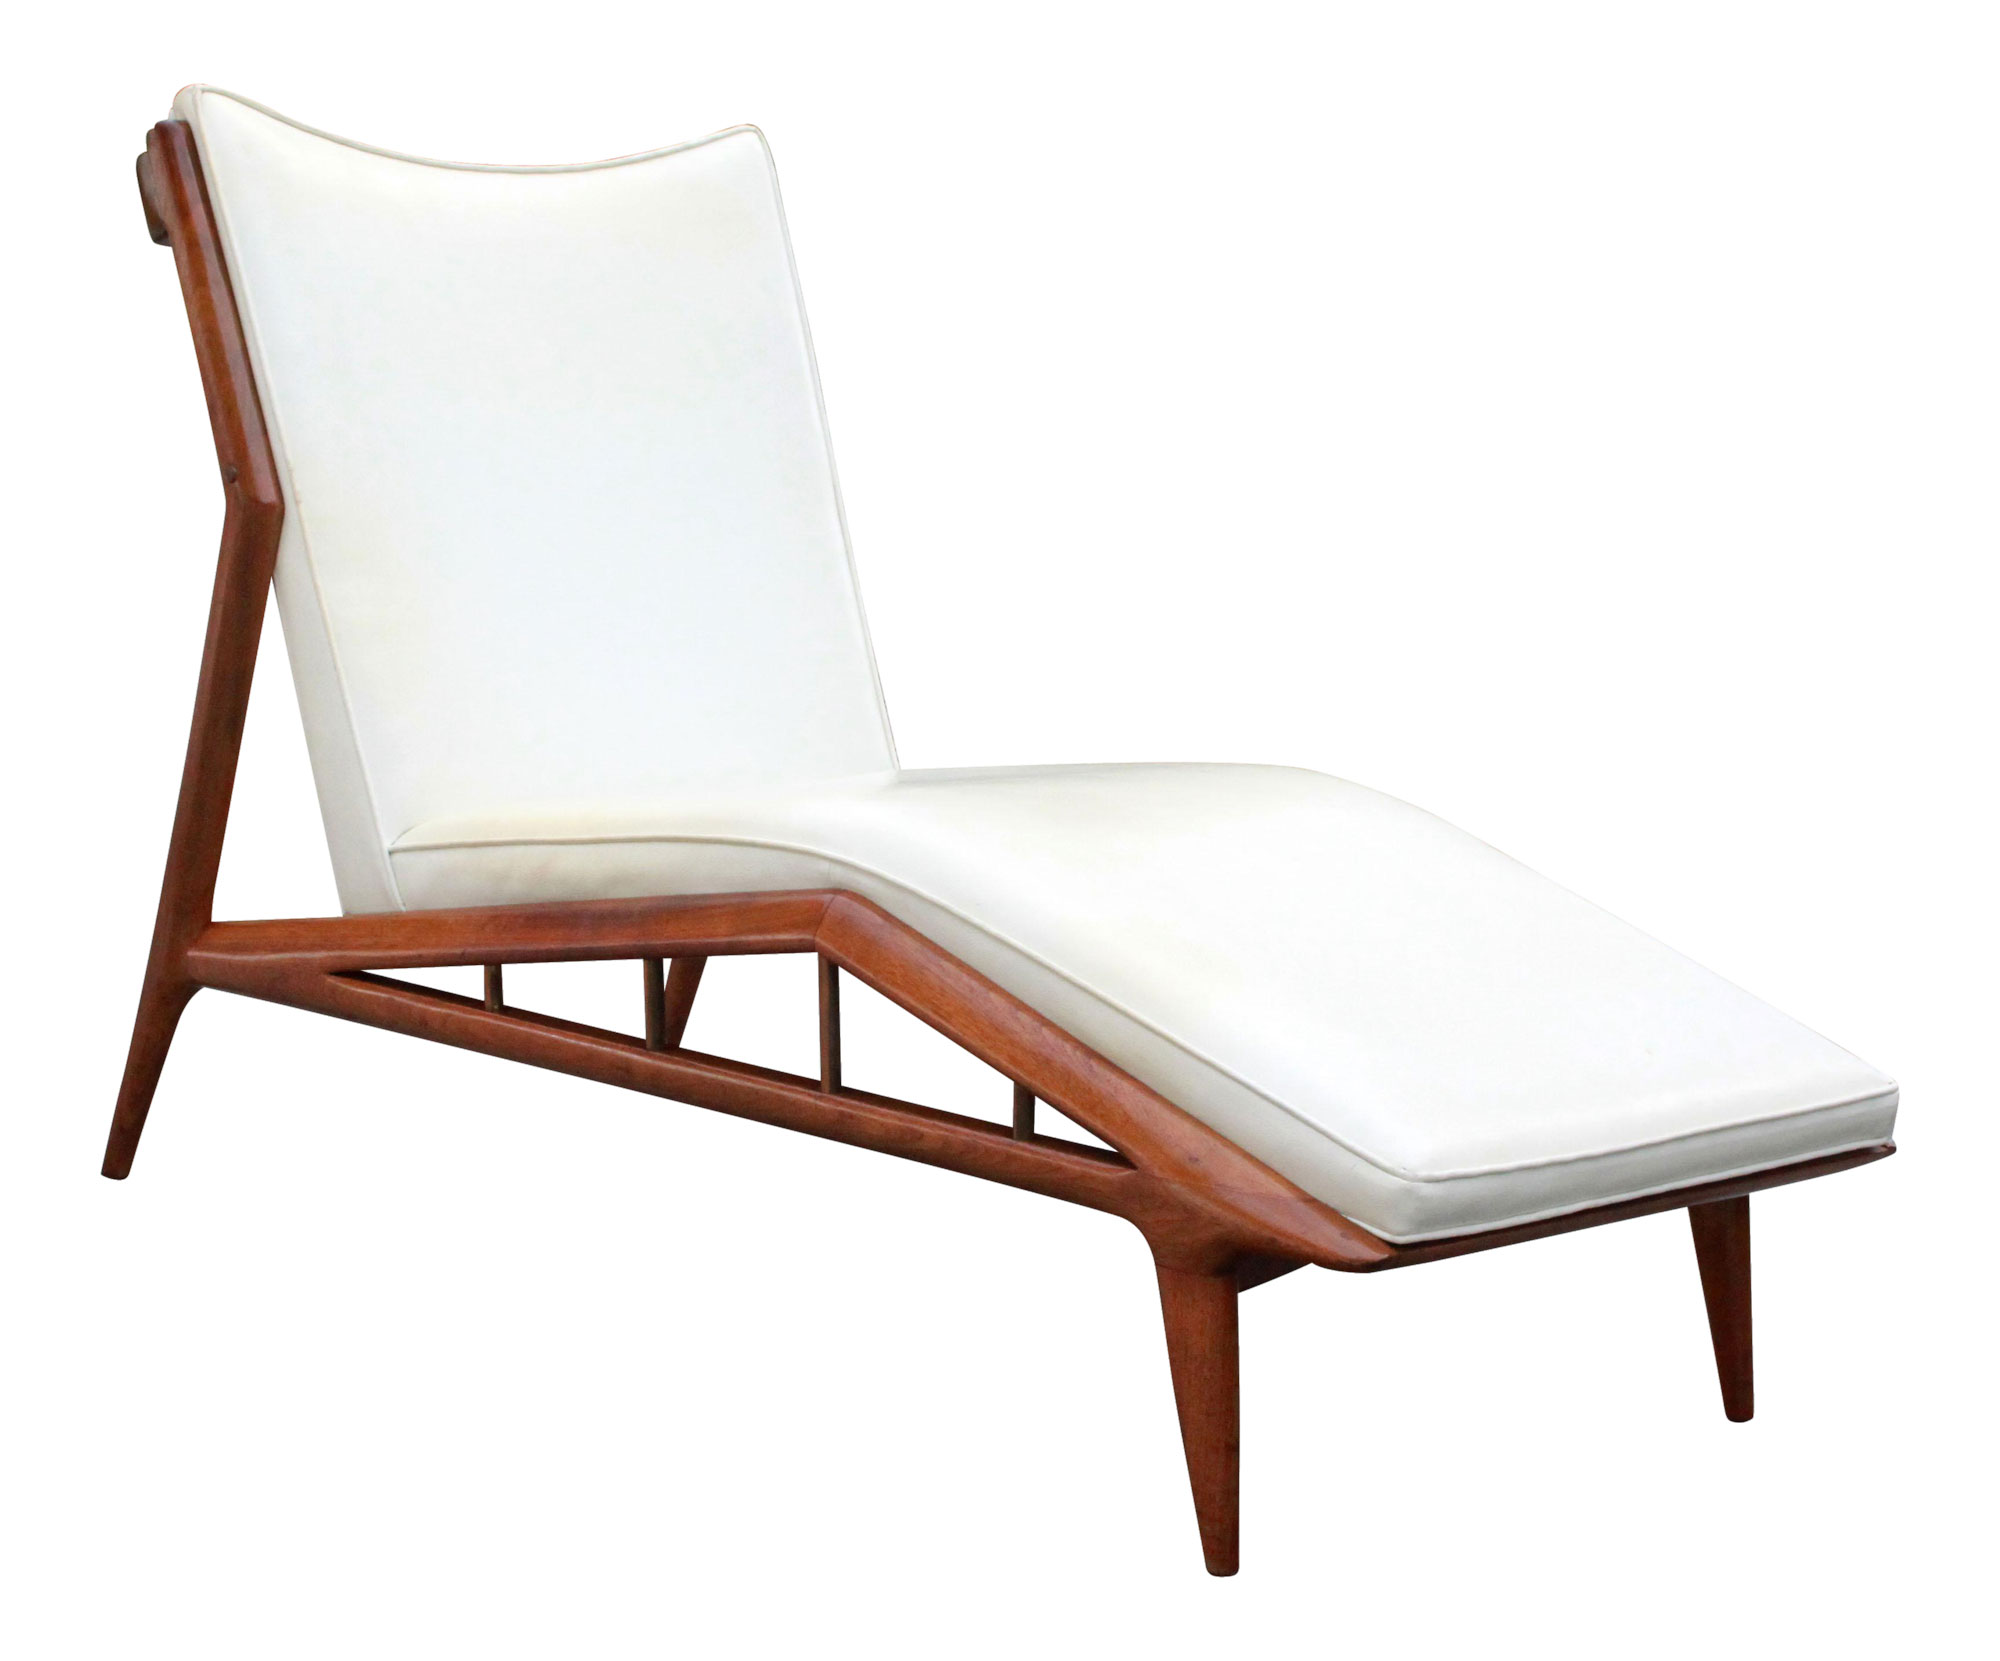 Beautiful Erwin Lambeth Sculpted Walnut Chaise Lounge With Chaise En Z.